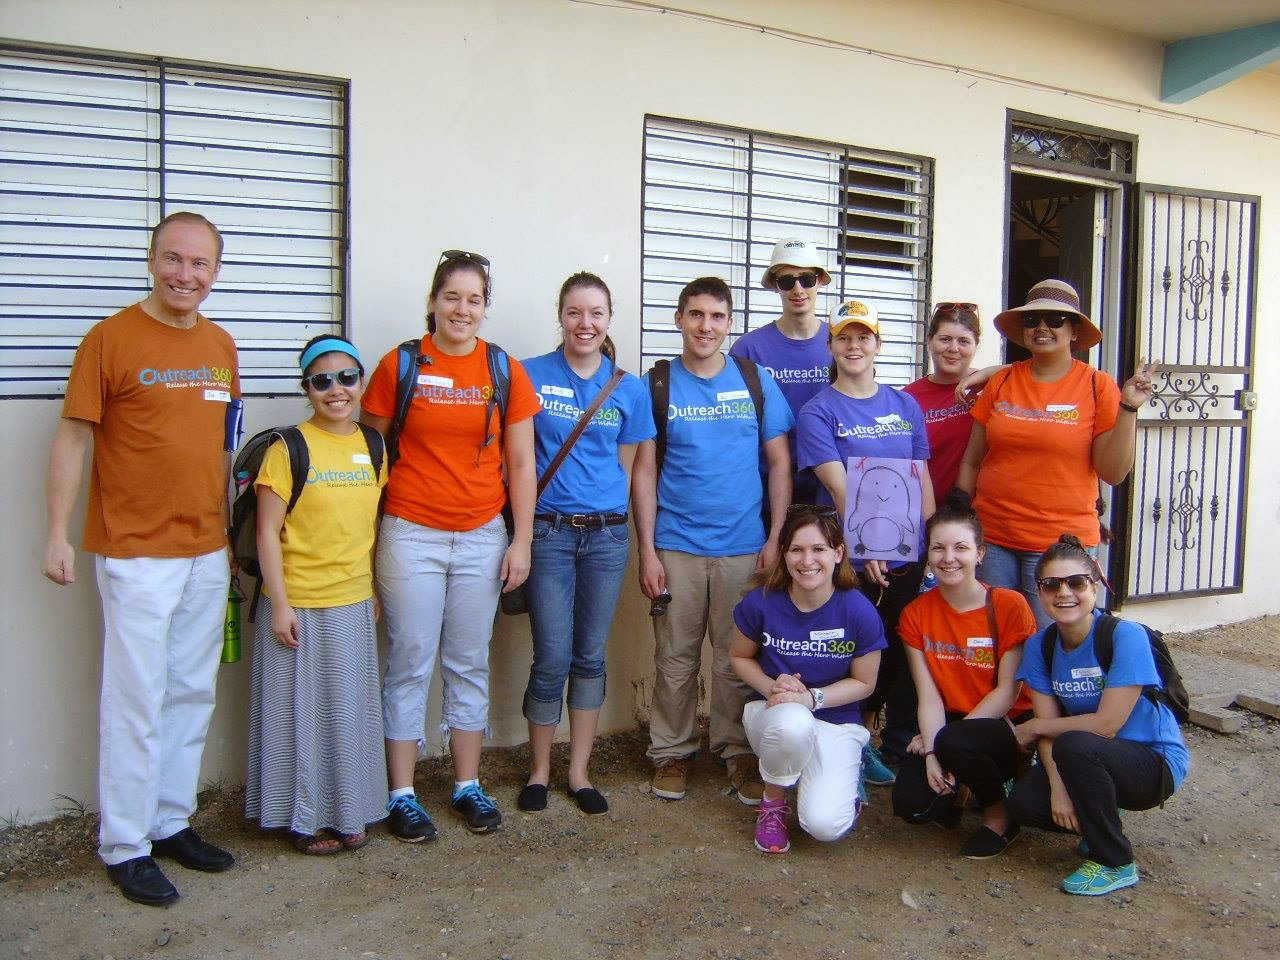 Outreach 360, Dominican Republic